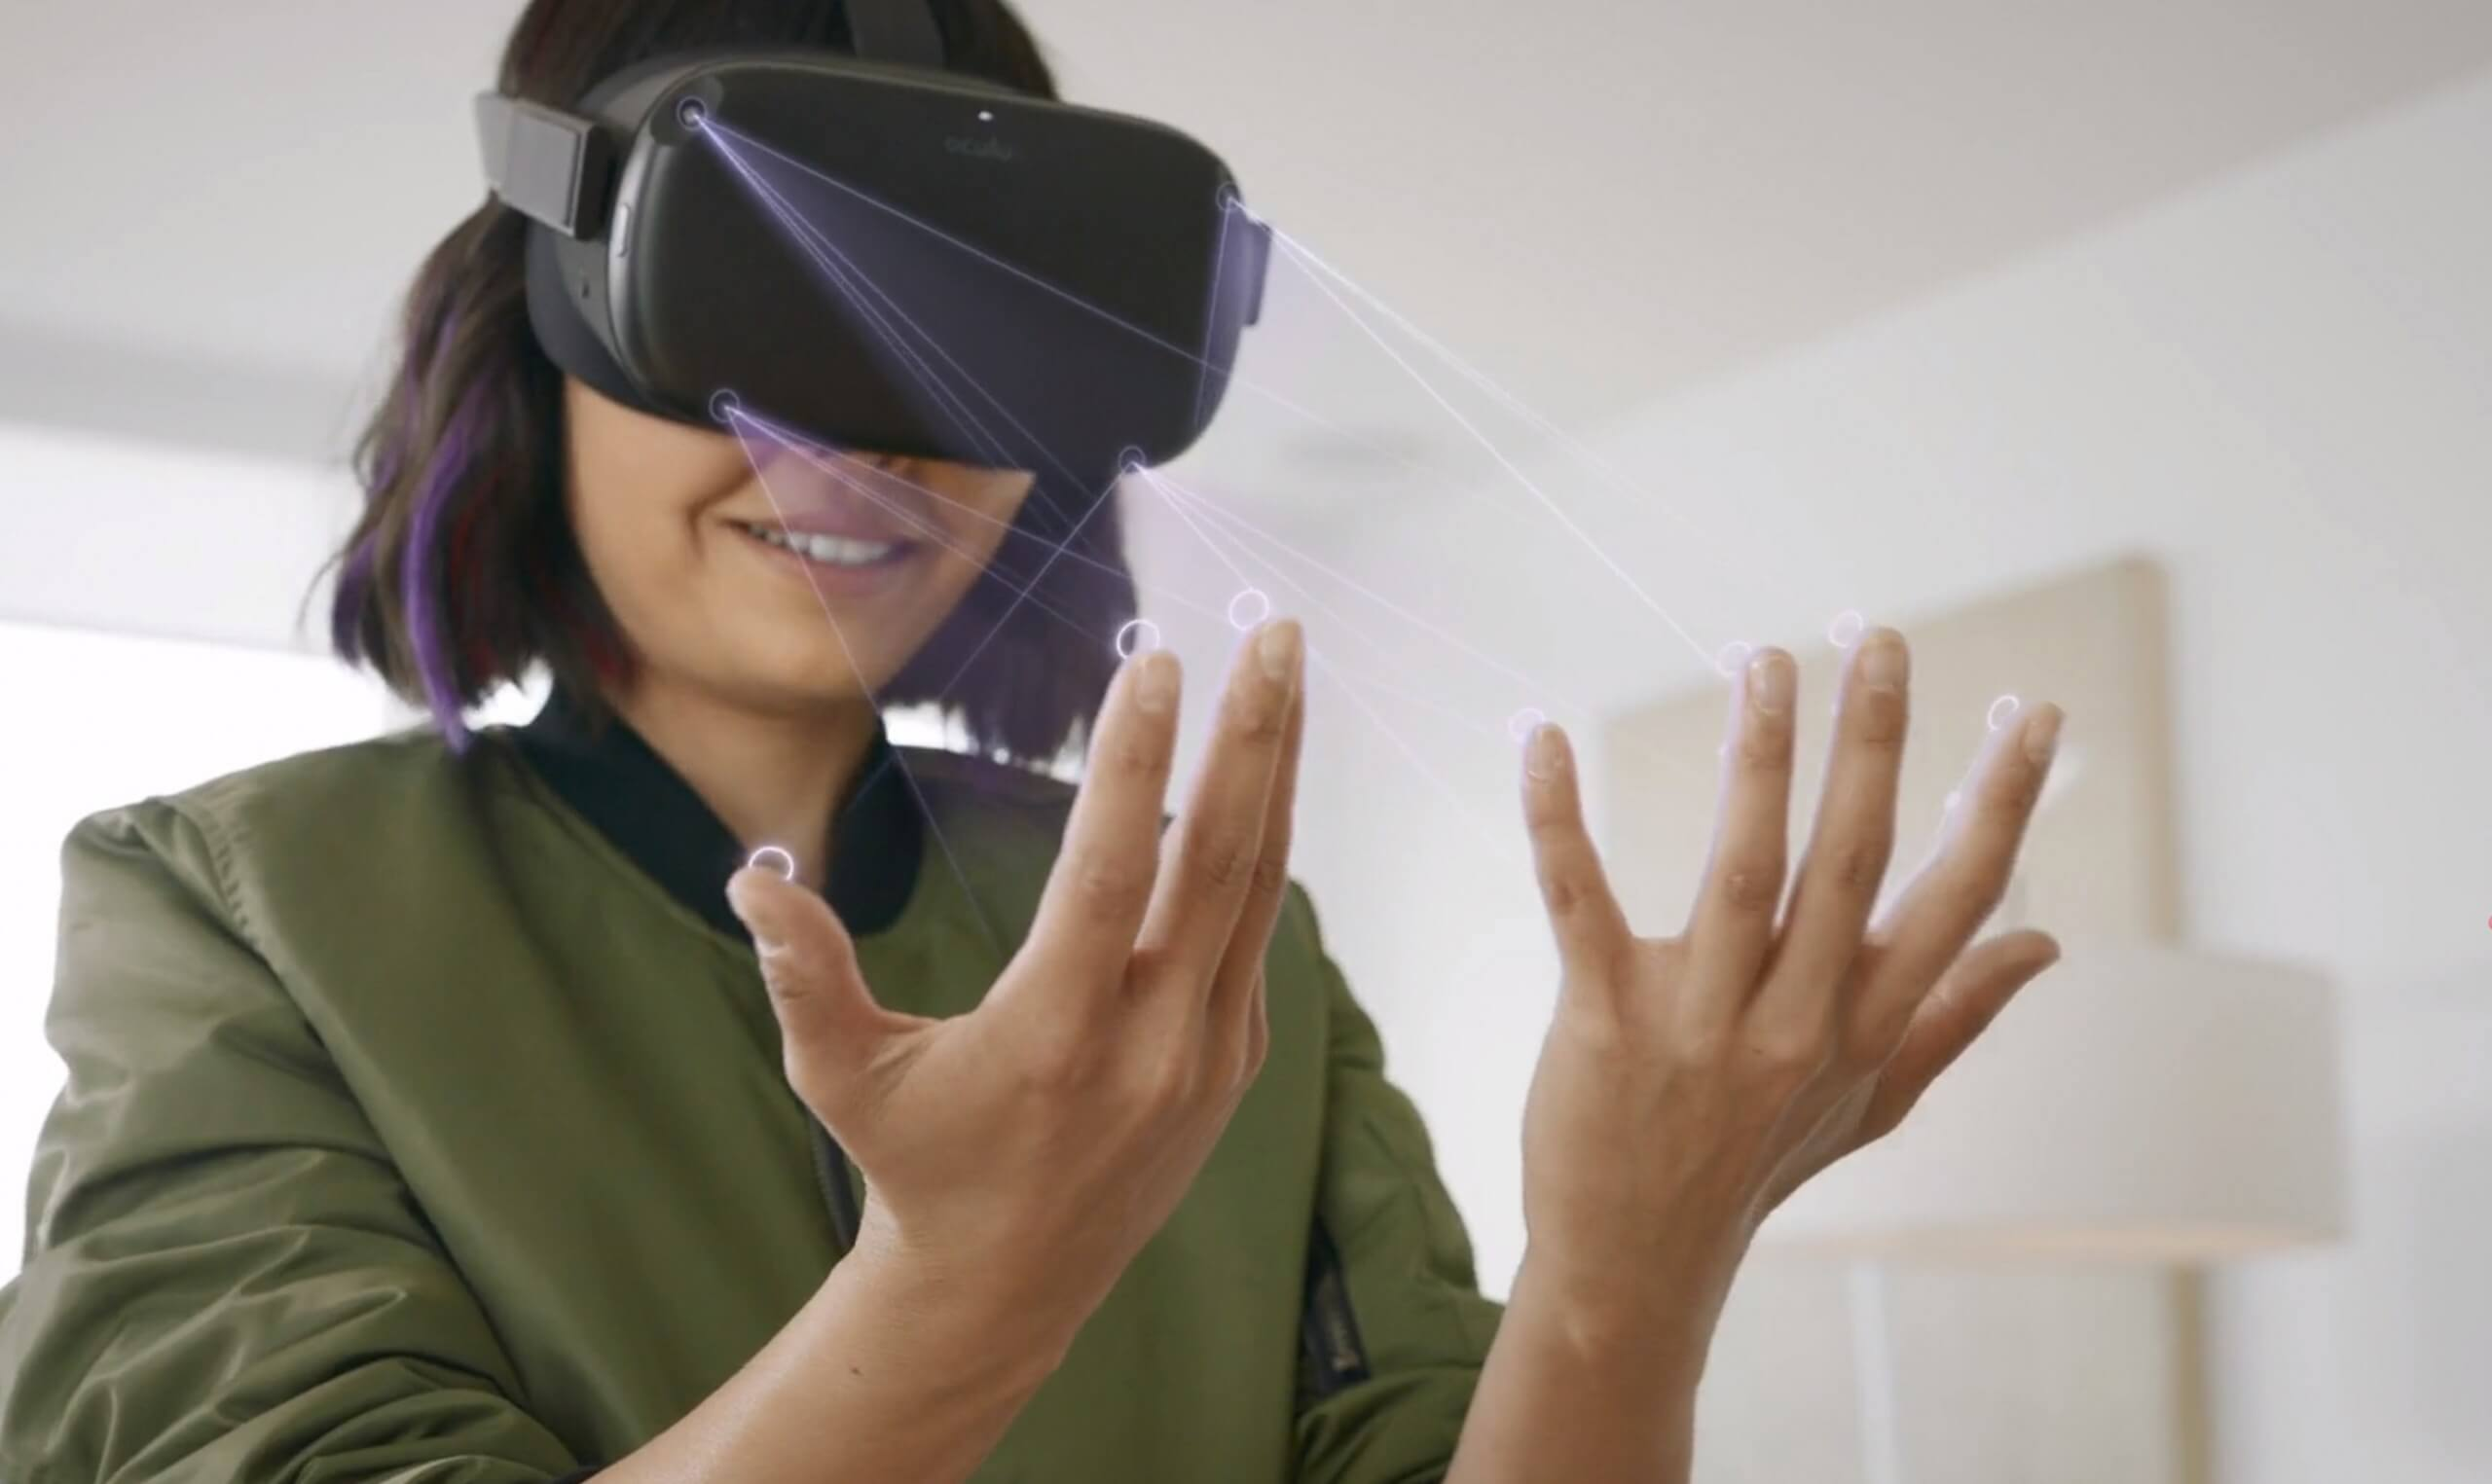 Oculus hand tracking for the Quest moves out of beta this week